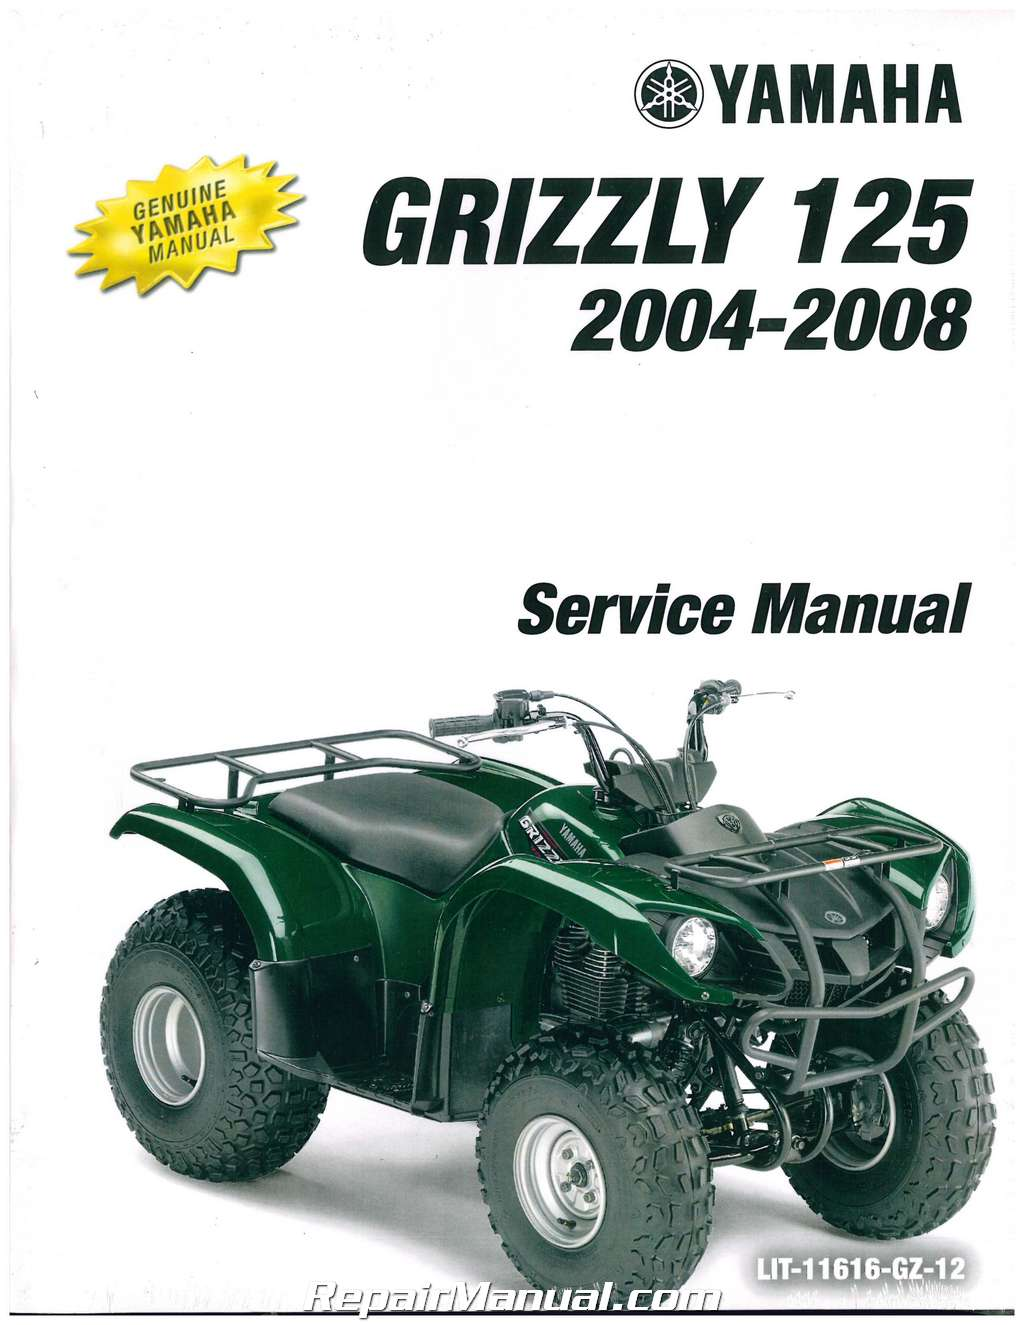 grizzly 125 owners manual open source user manual u2022 rh dramatic varieties com yamaha breeze 125 service manual pdf yamaha breeze 125 service manual pdf